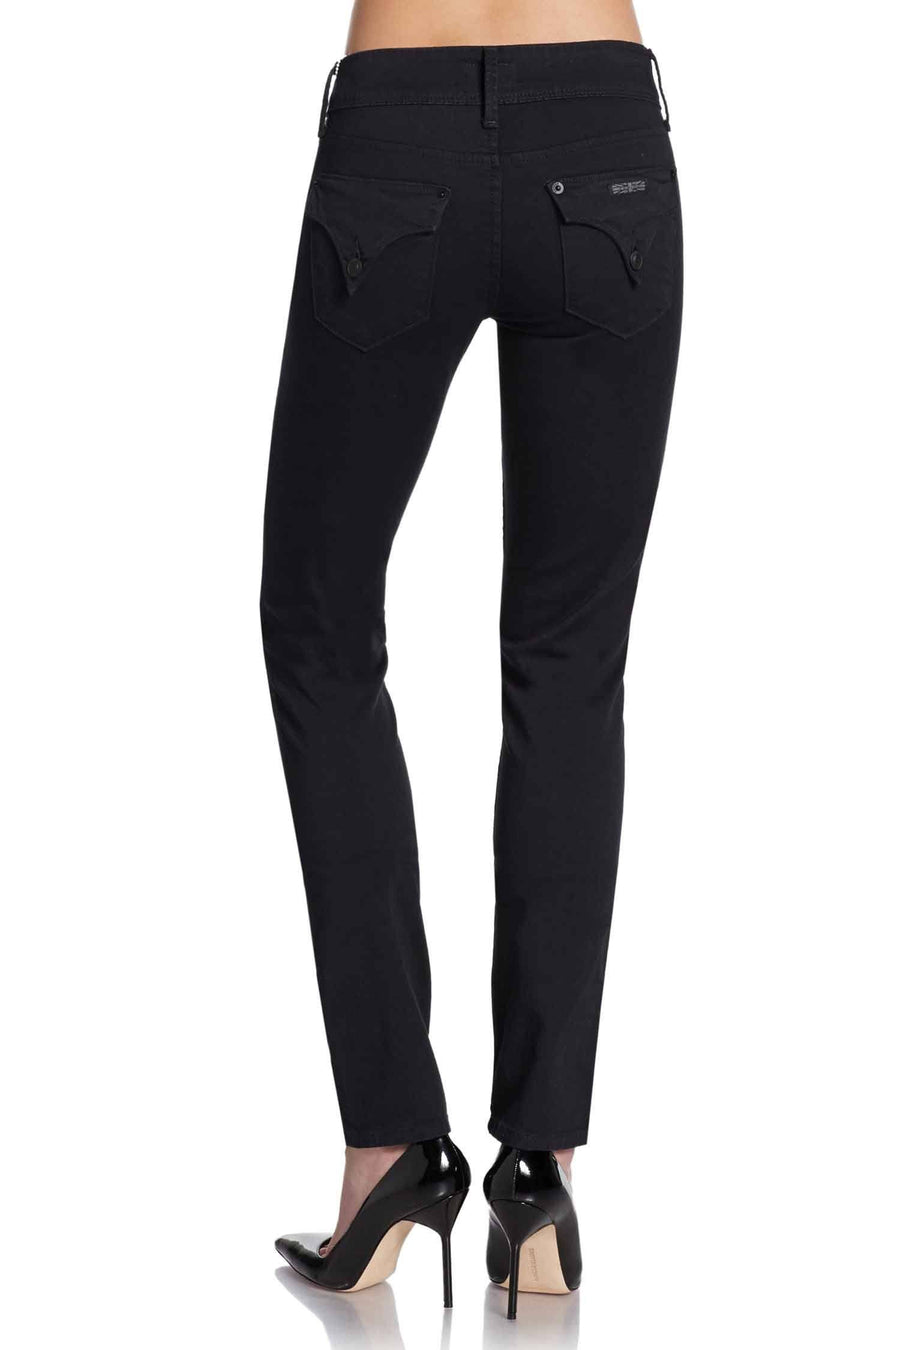 Shop Online Colin Skinny Jeans in Black by Hudson  Frockaholics Bottoms